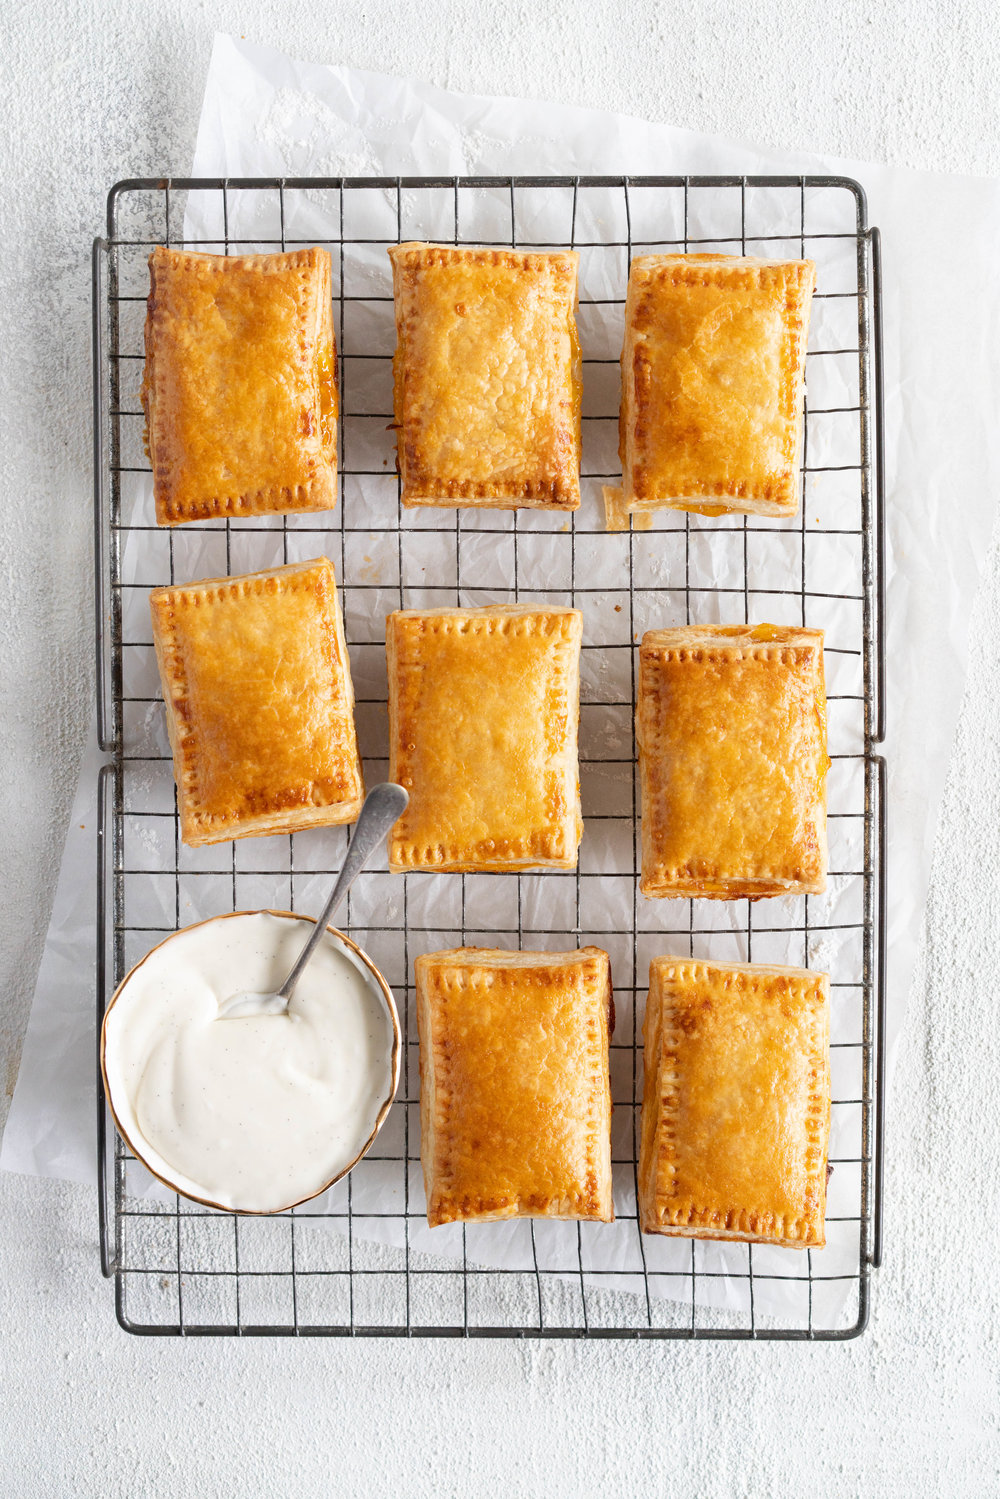 Apricot Pop Tarts with Vanilla Bean Icing - a quick apricot jam is enclosed in a buttery, flaky puff pastry, before being finished off with a vanilla bean icing. #poptart #pastry #apricot #jam #apricotjam #vanillabean